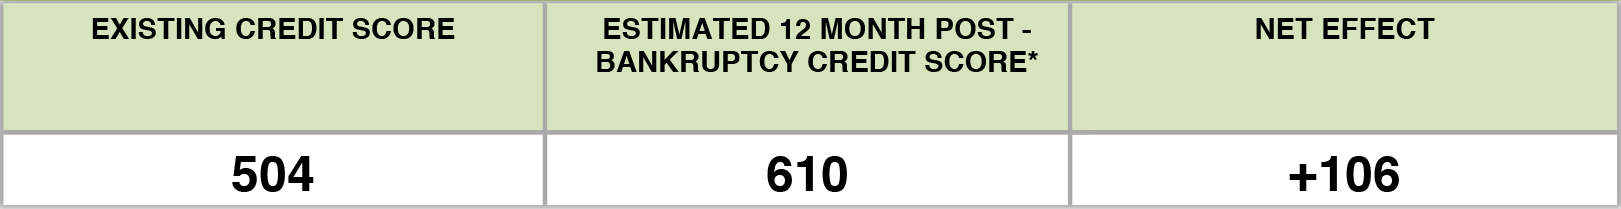 Credit Score Increase from 504 to 610